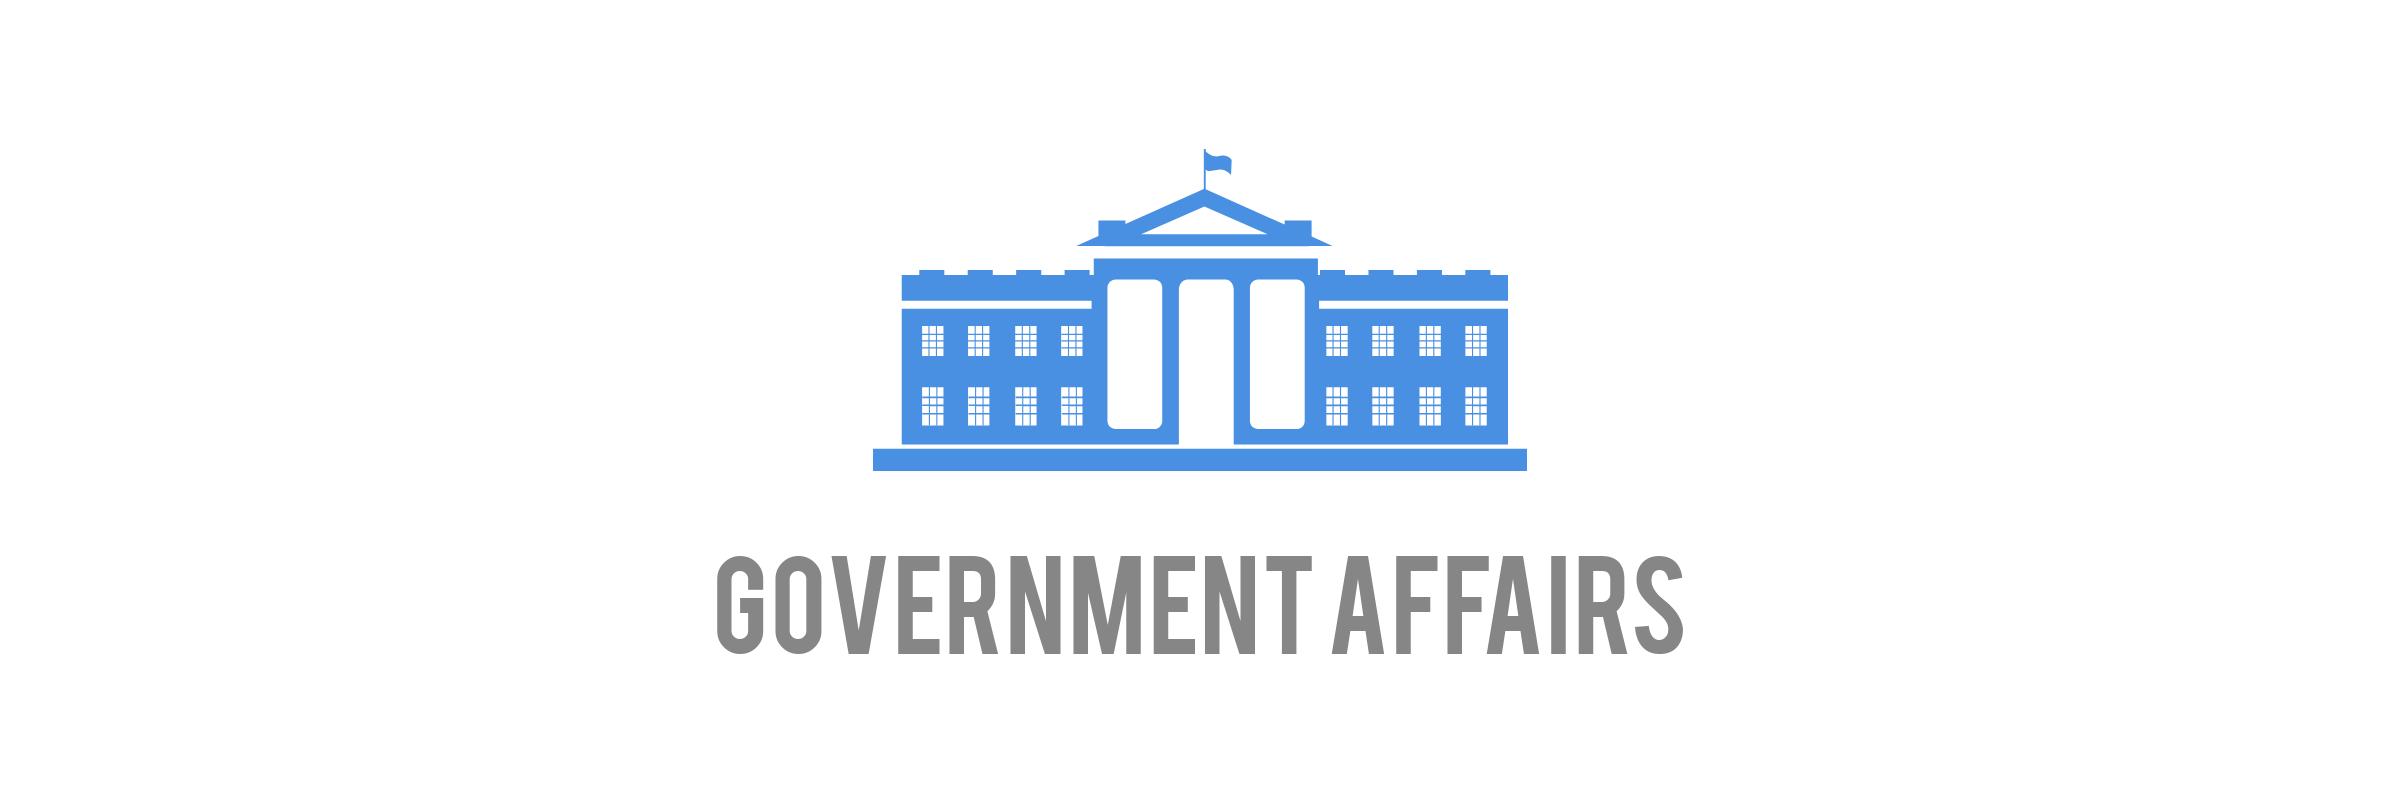 government-affairs-icon.png